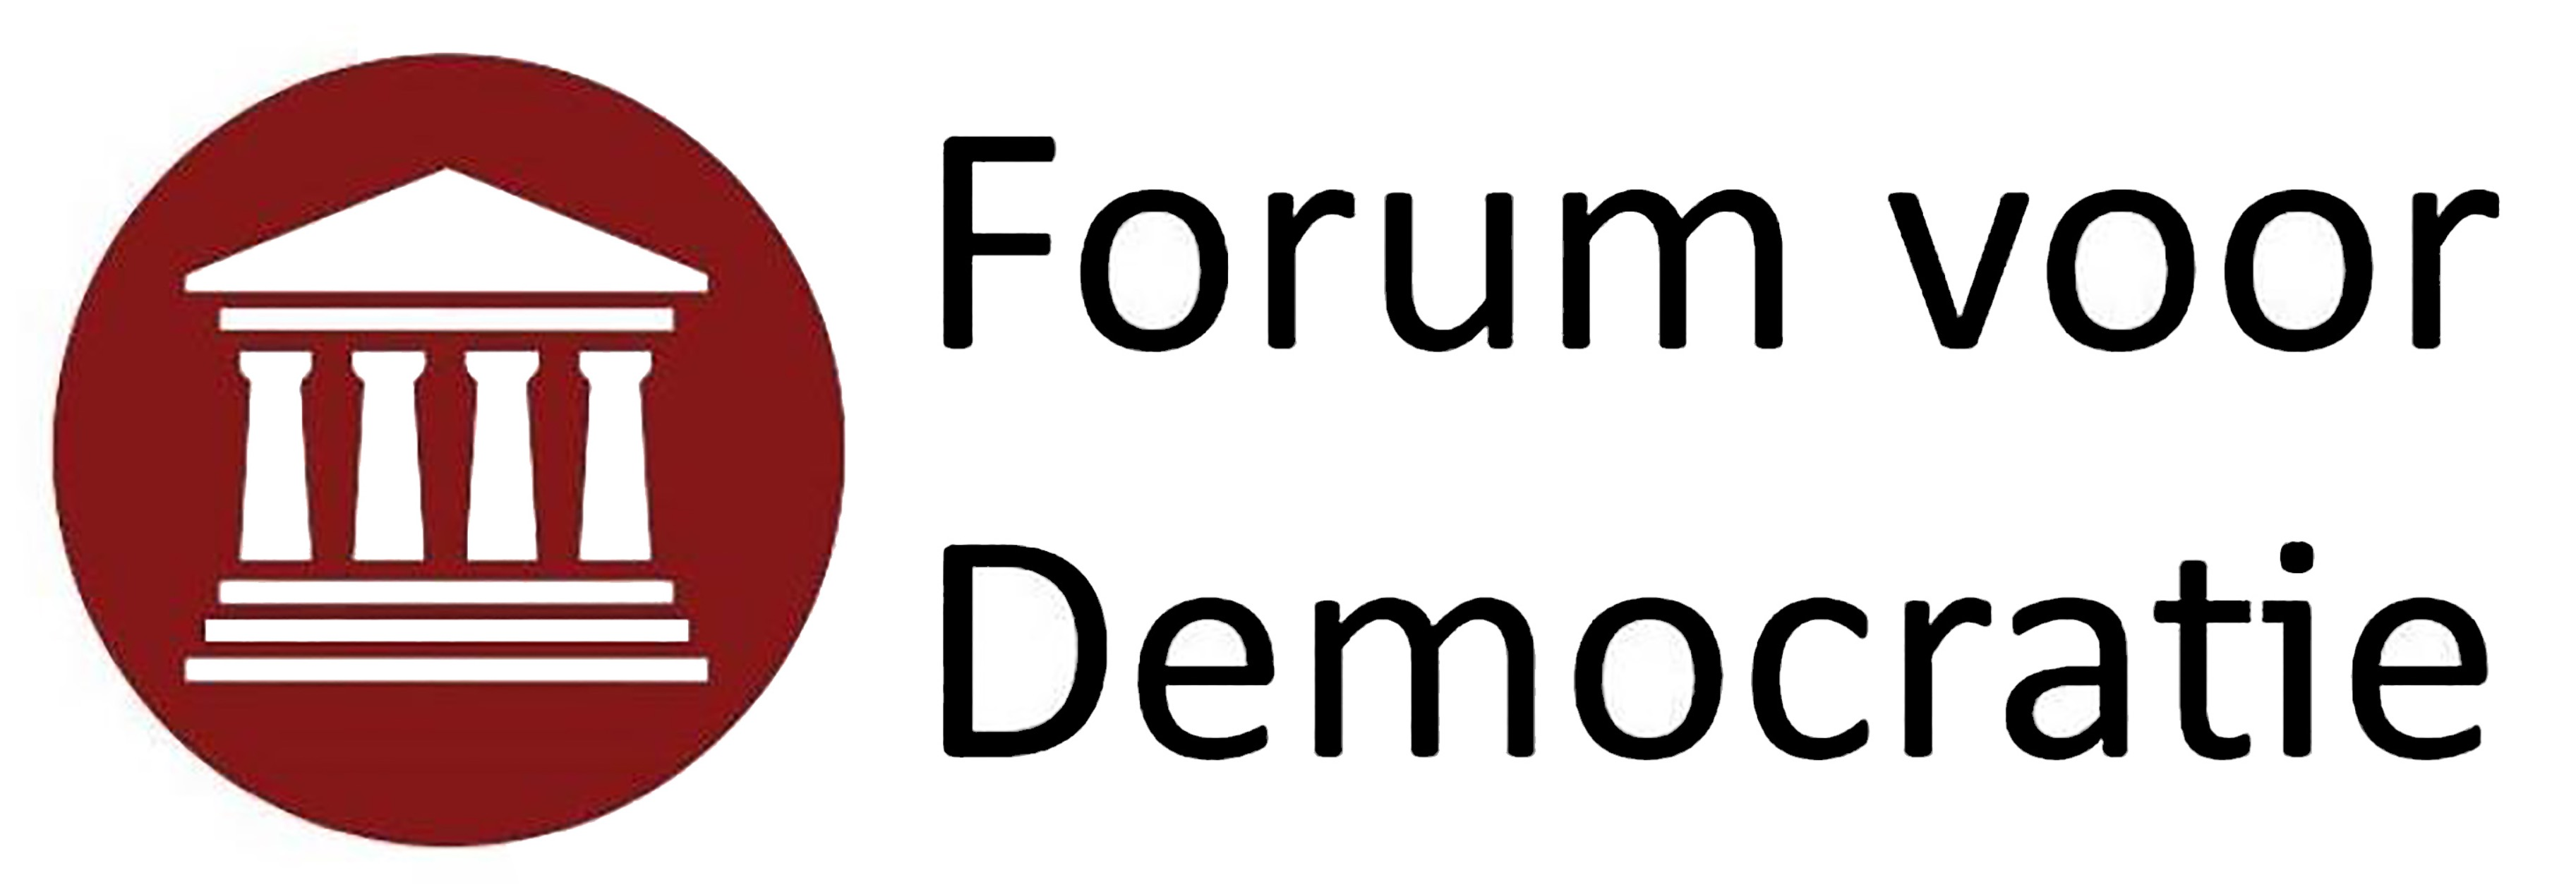 Forum for Democracy (Forum voor Democratie)